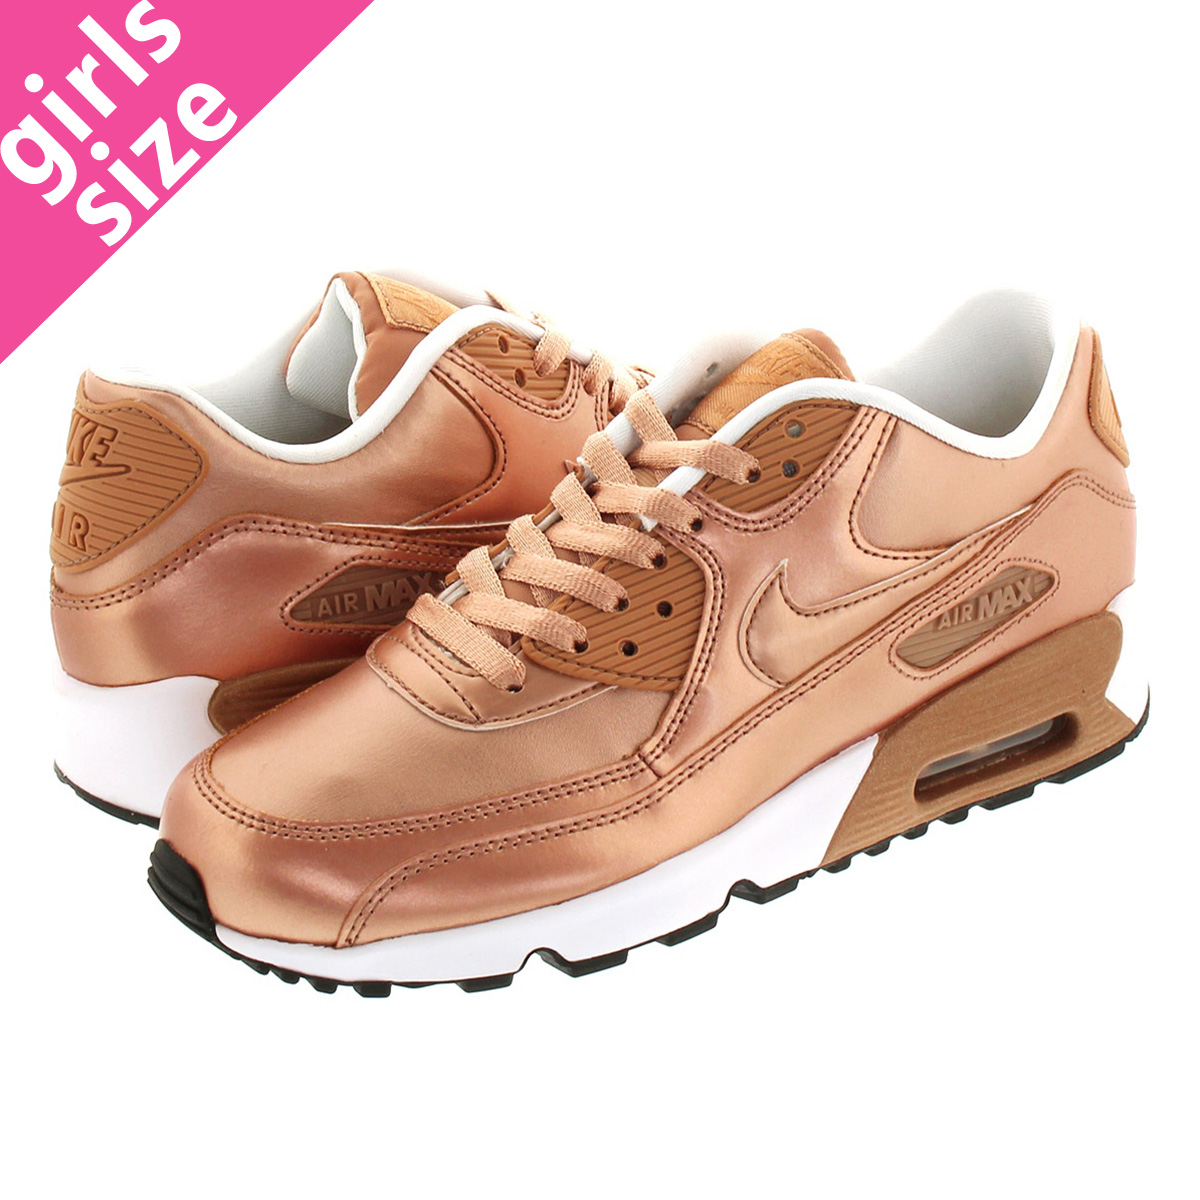 NIKE AIR MAX 90 SE LTR GS Kie Ney AMAX 90 SE leather GS METALLIC RED BRONZE 859,633 900